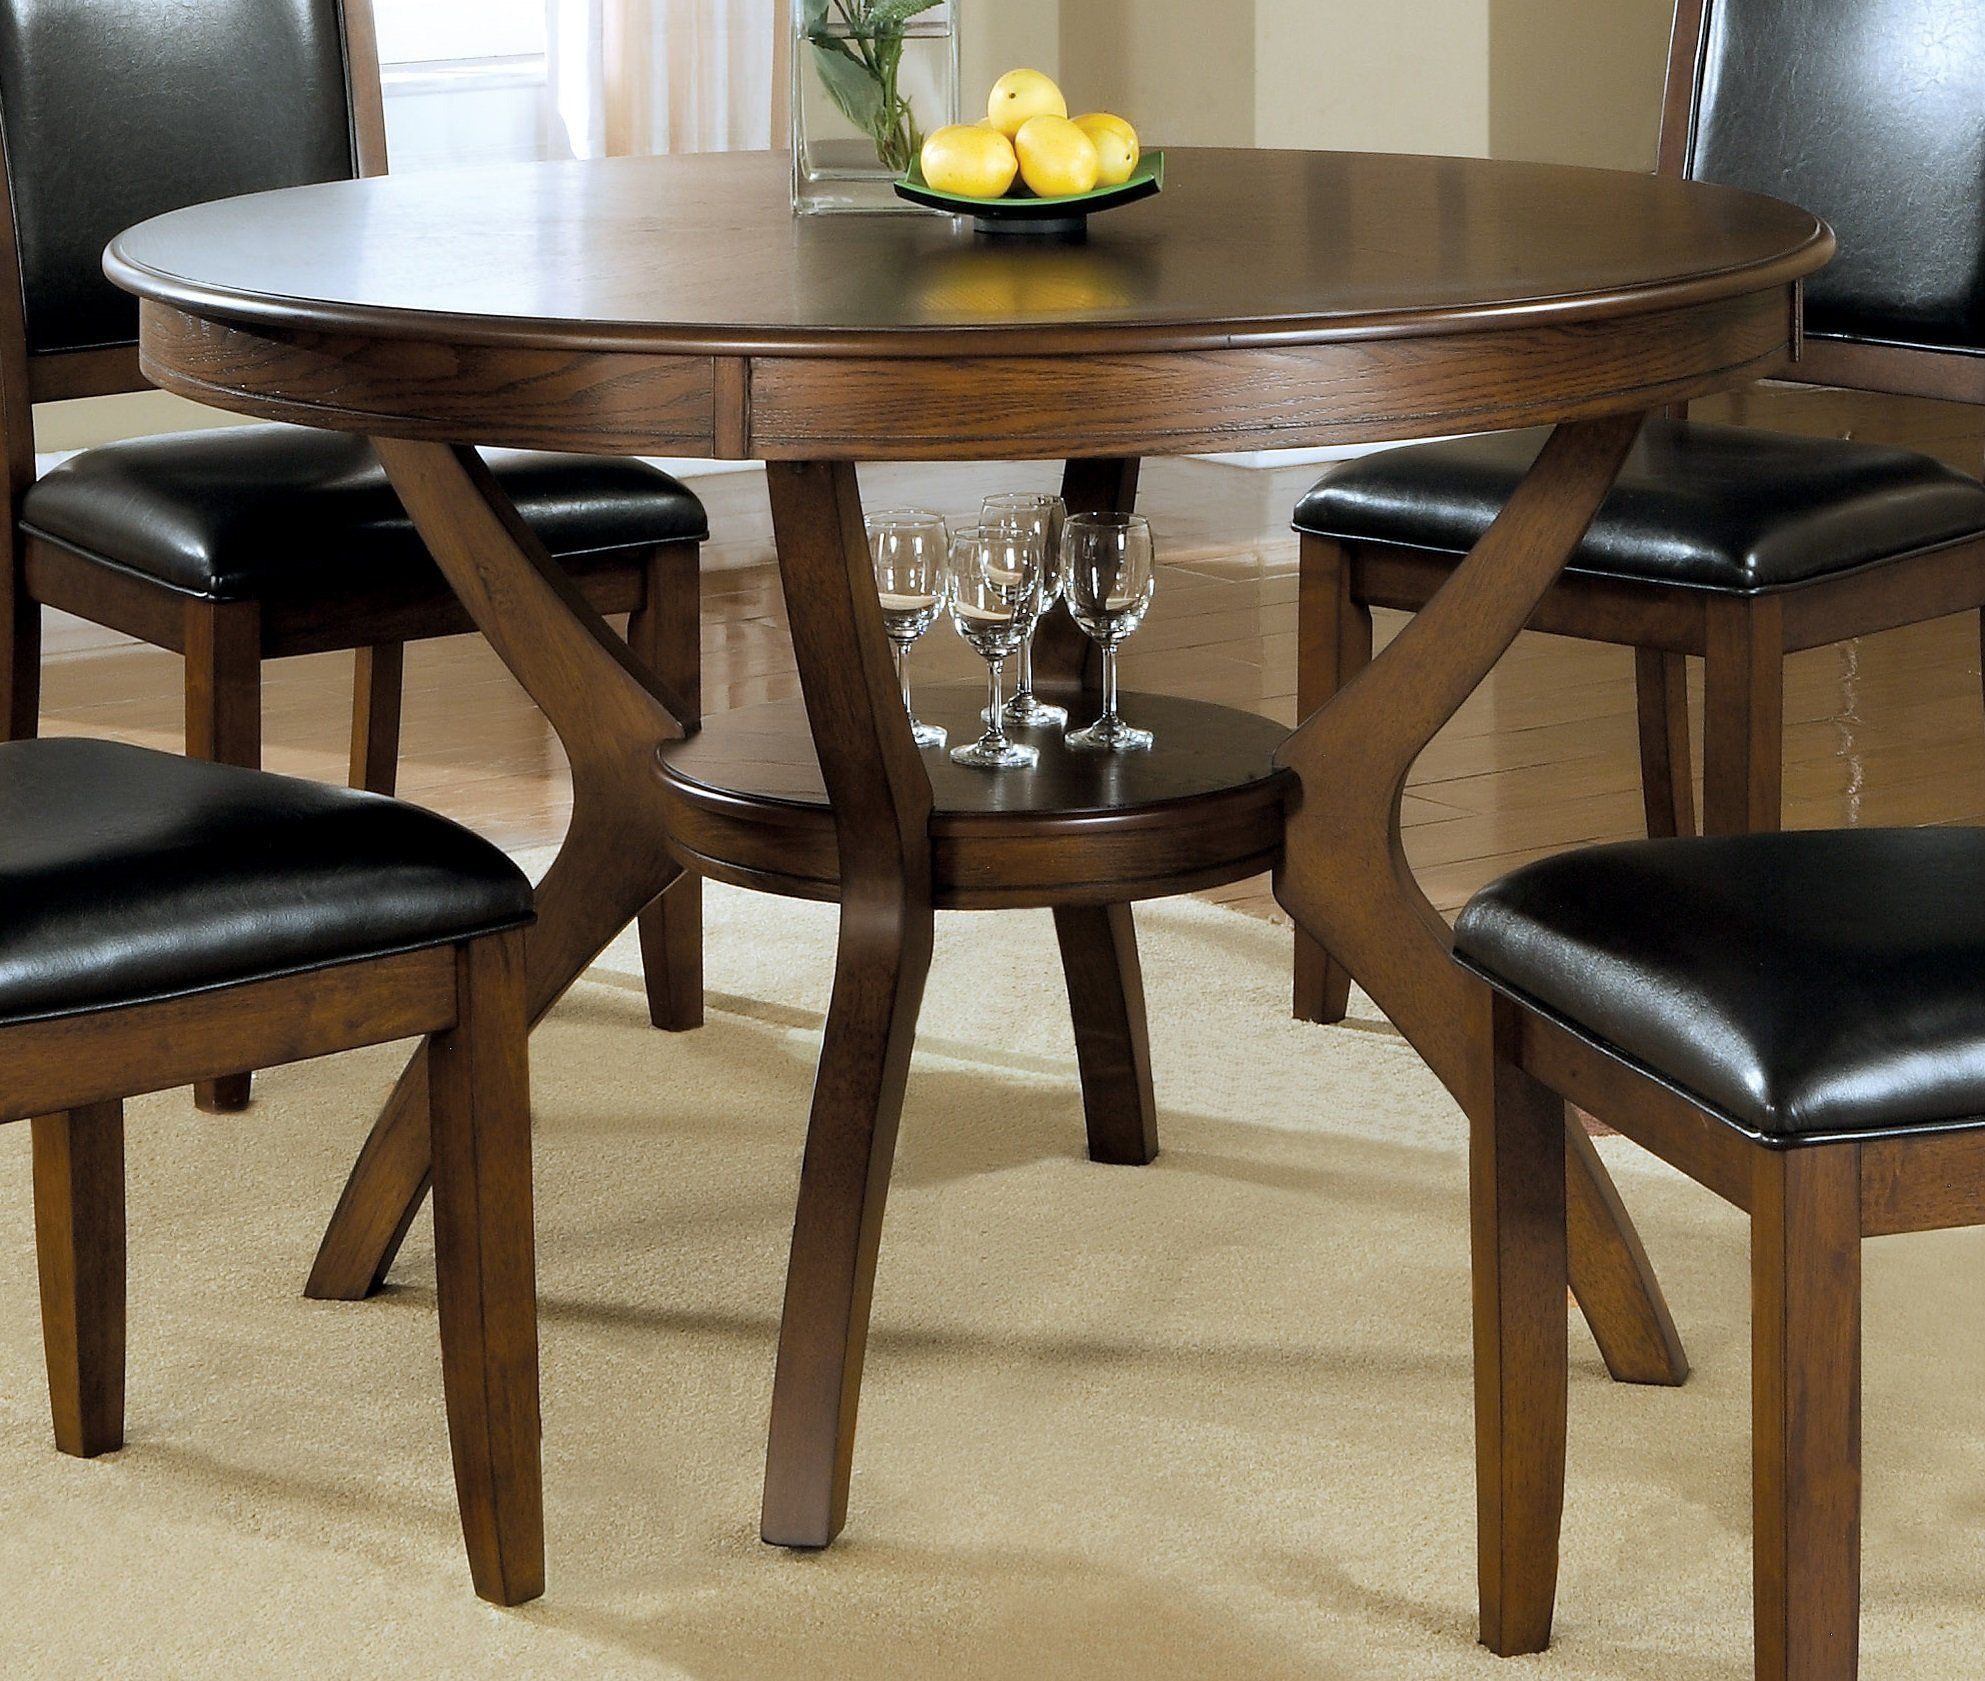 Best ideas about Amazon Dining Table . Save or Pin Amazon Monarch Specialties Ash Veneer Dining Table Now.